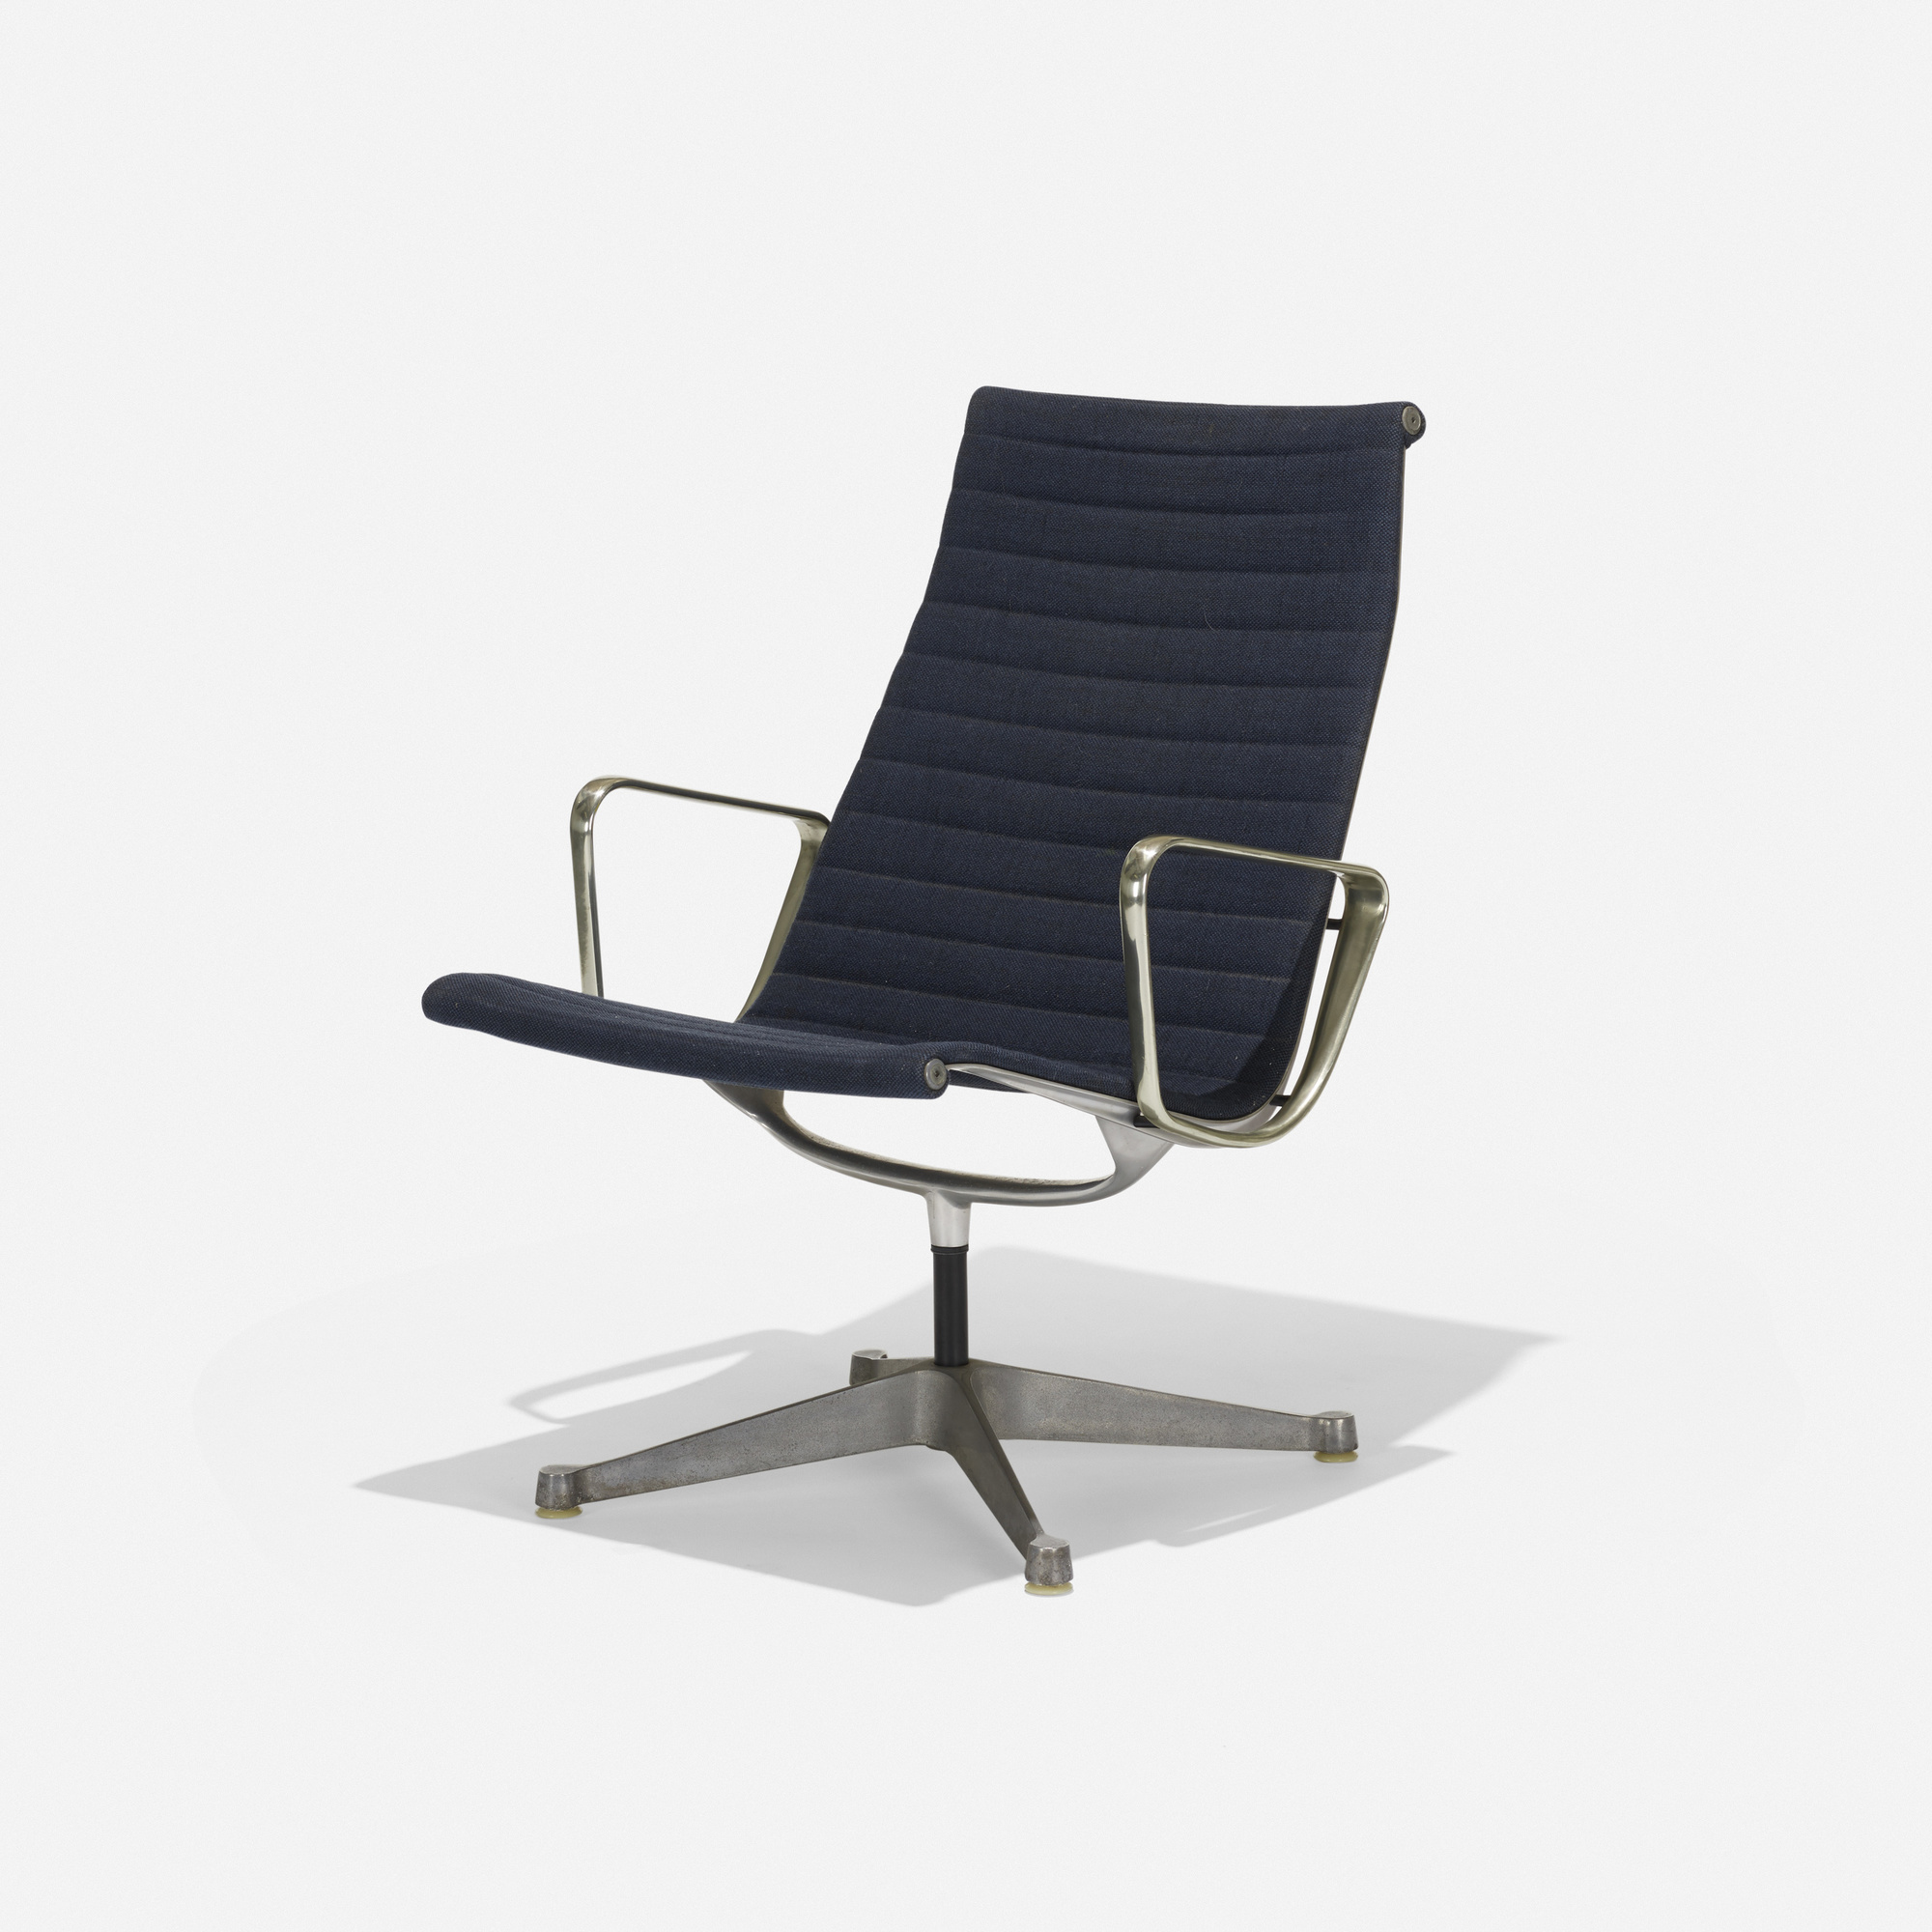 155 Charles And Ray Eames Aluminum Group Lounge Chair American